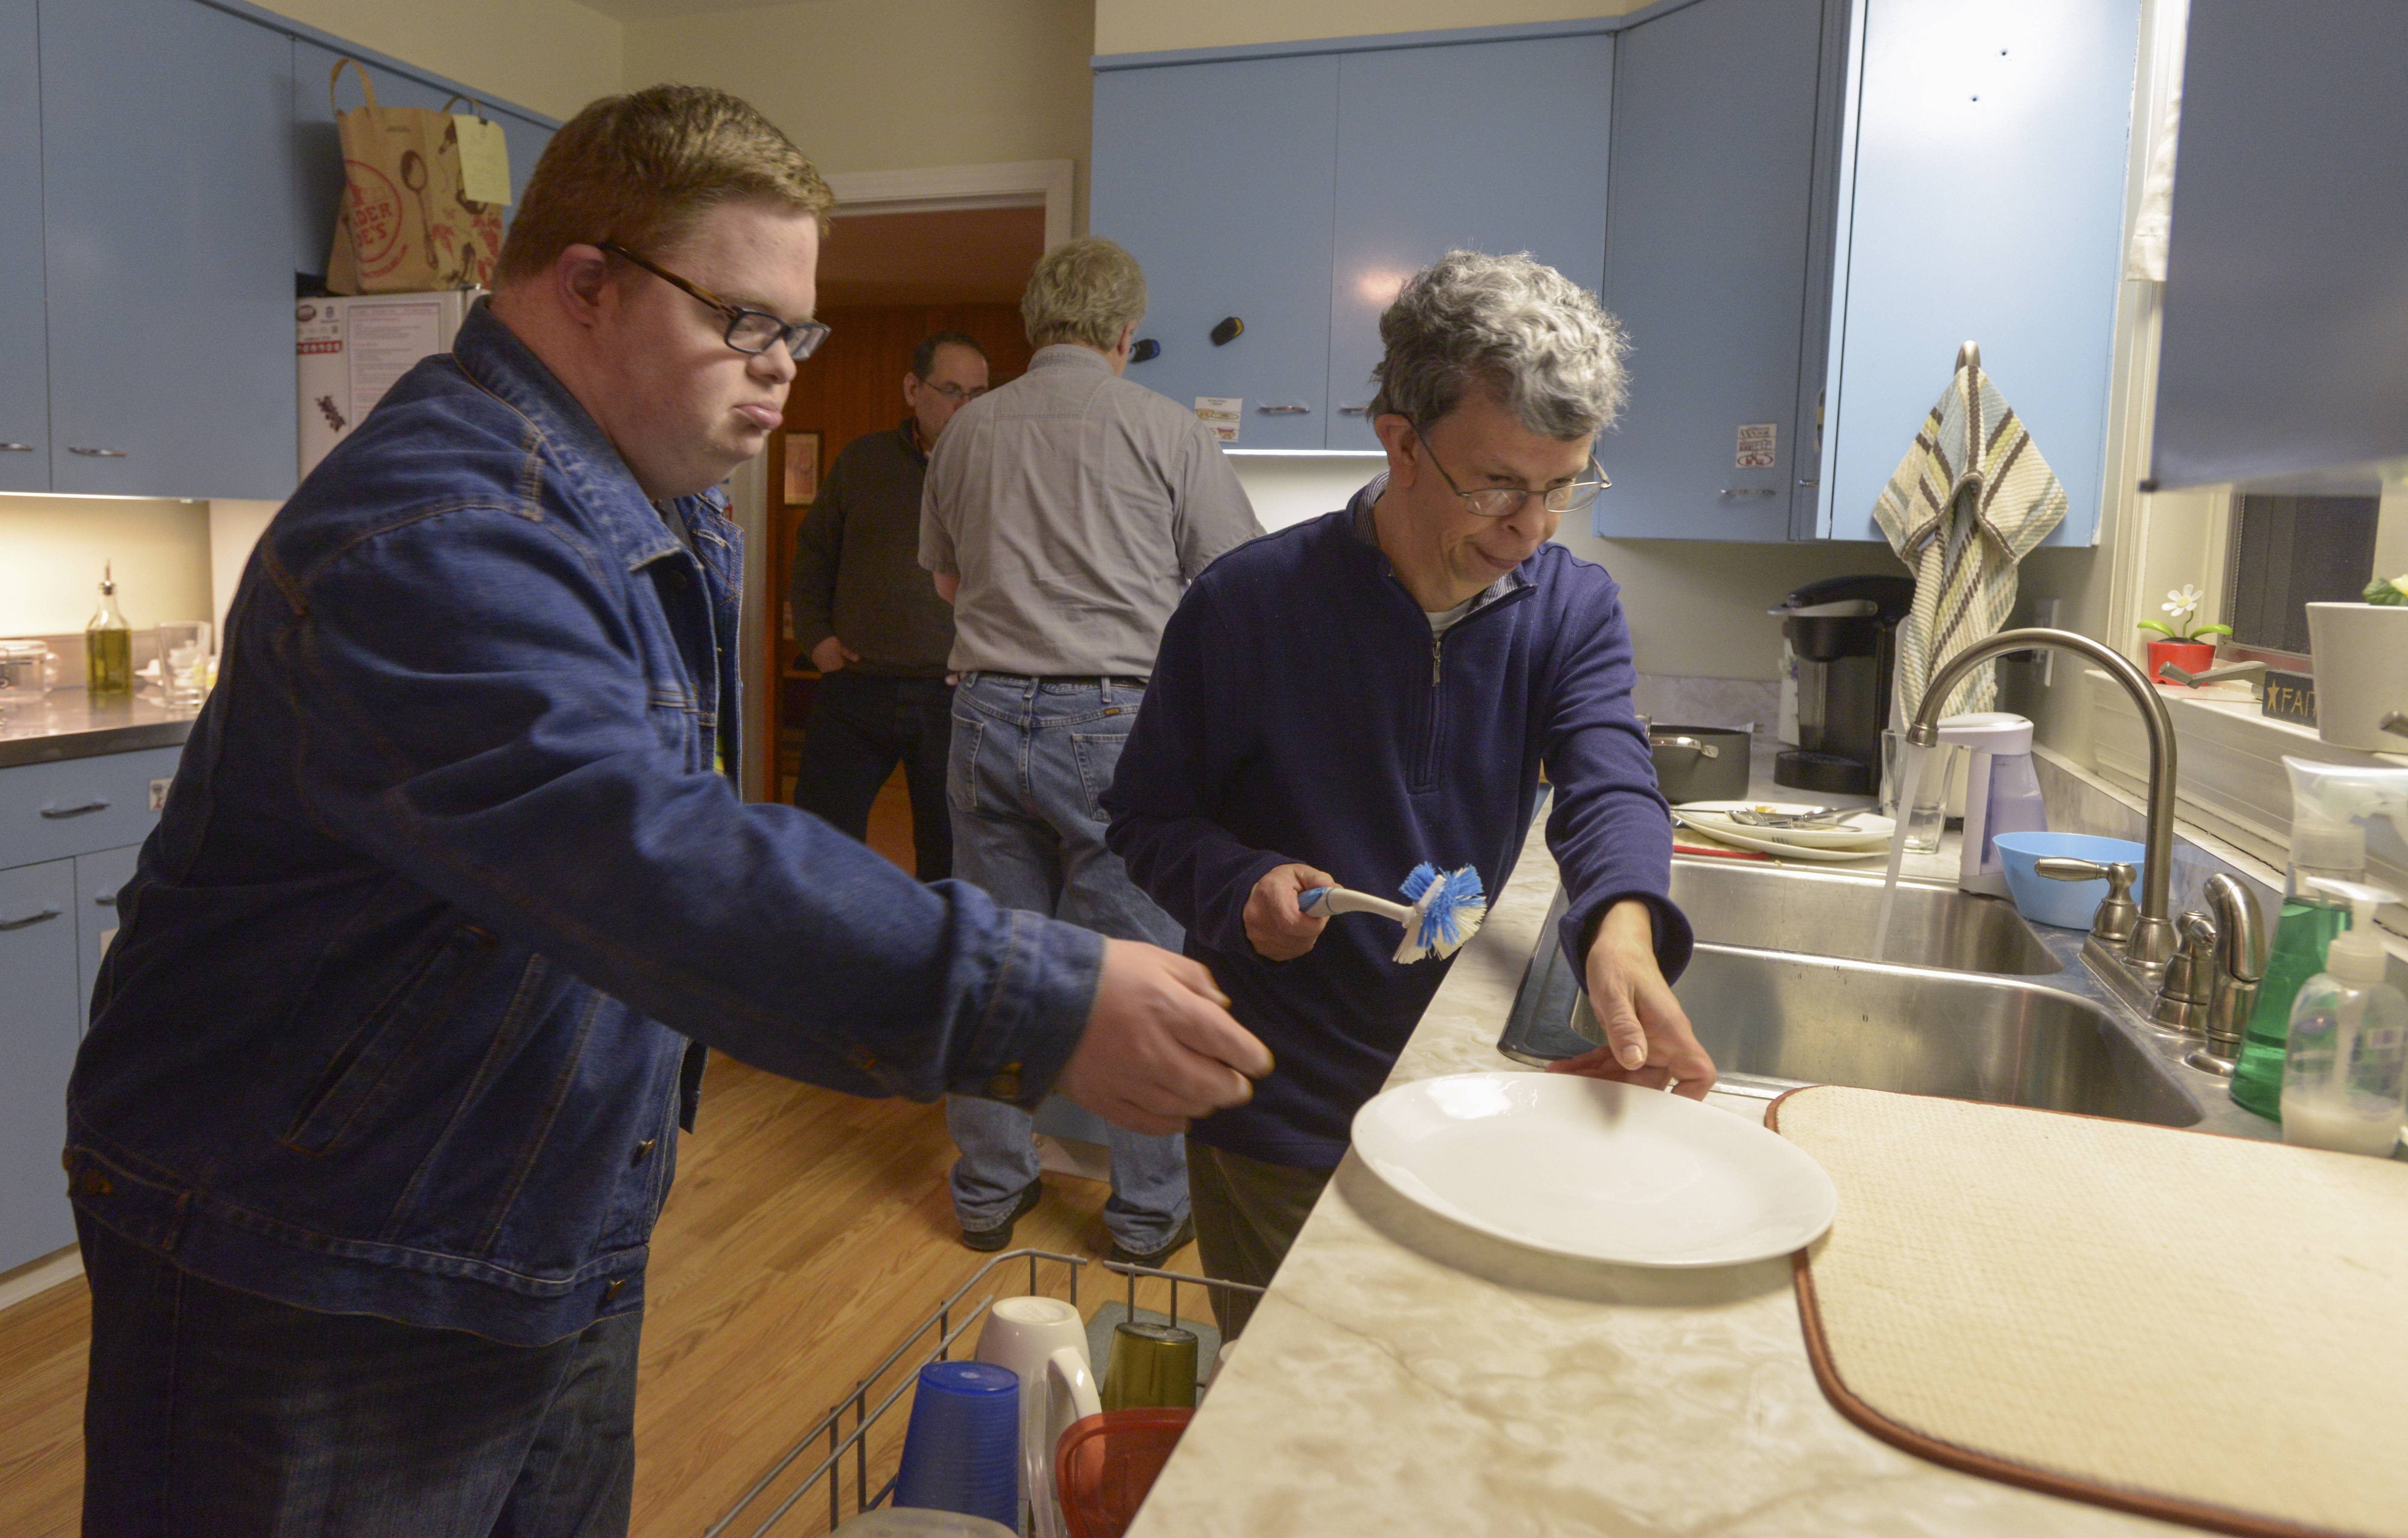 After dinner Washington House residents Ian Kenneally, left, and Gary Brunette clean the dishes as part of their nightly chores.